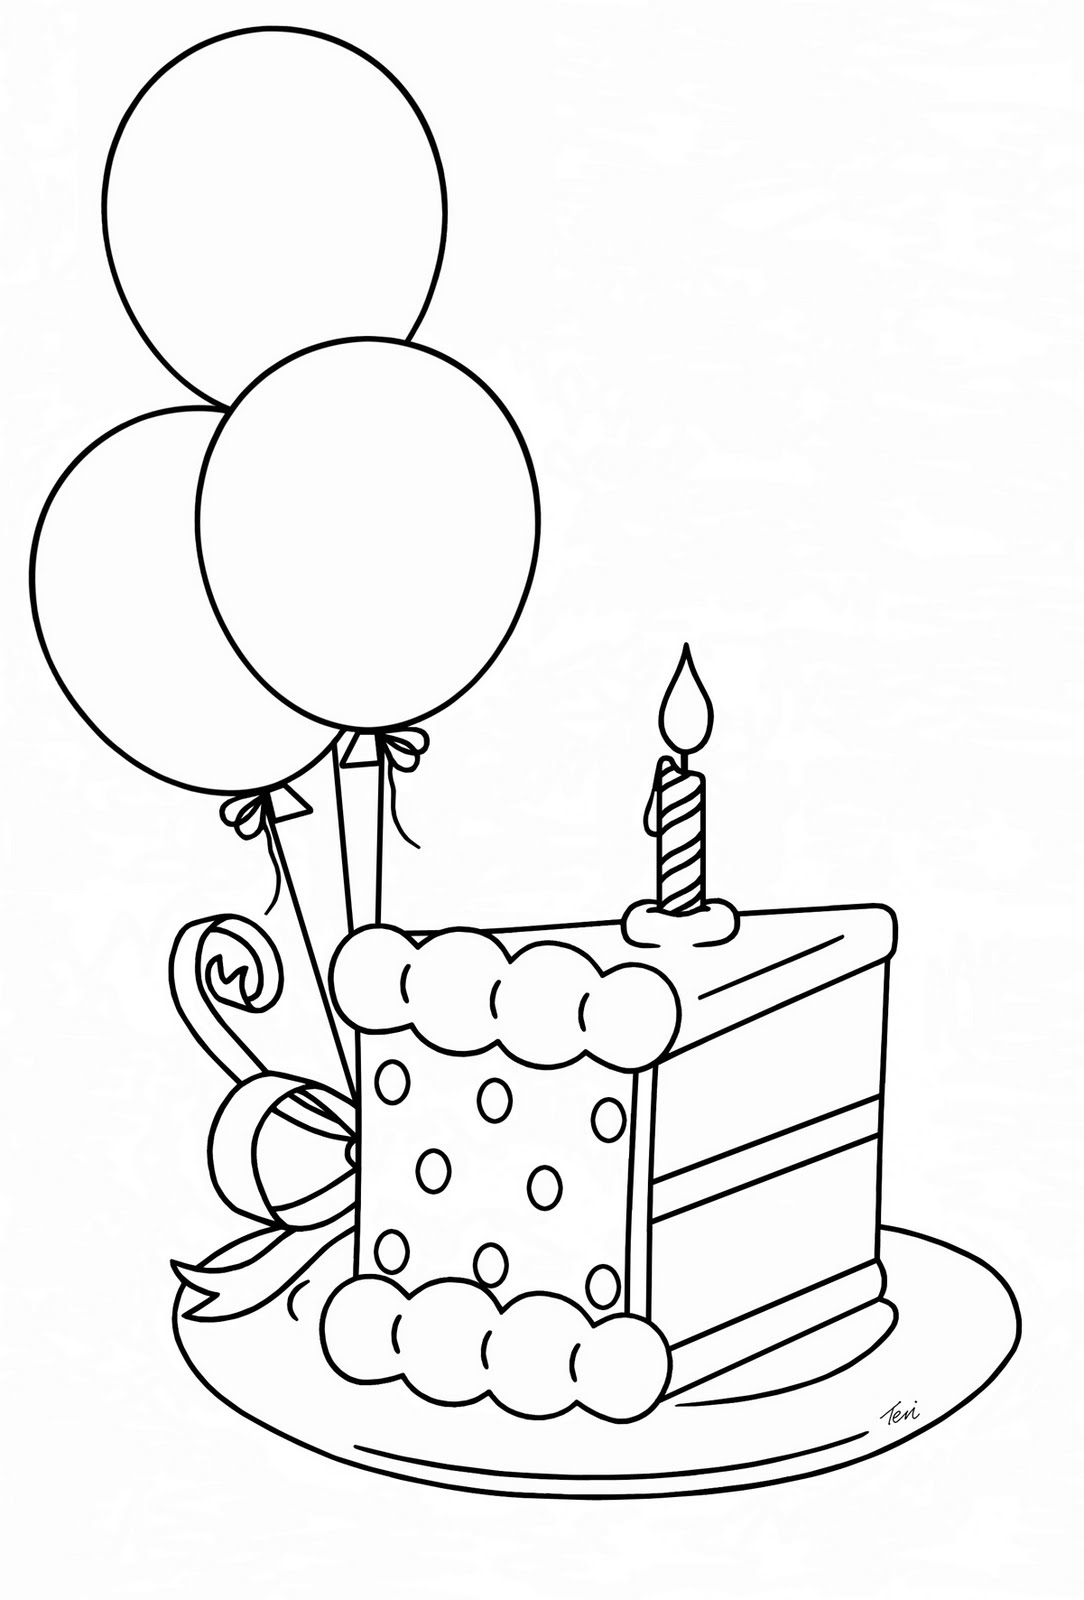 birthday cake for drawing ; Birthday-cake-slice-drawing-4